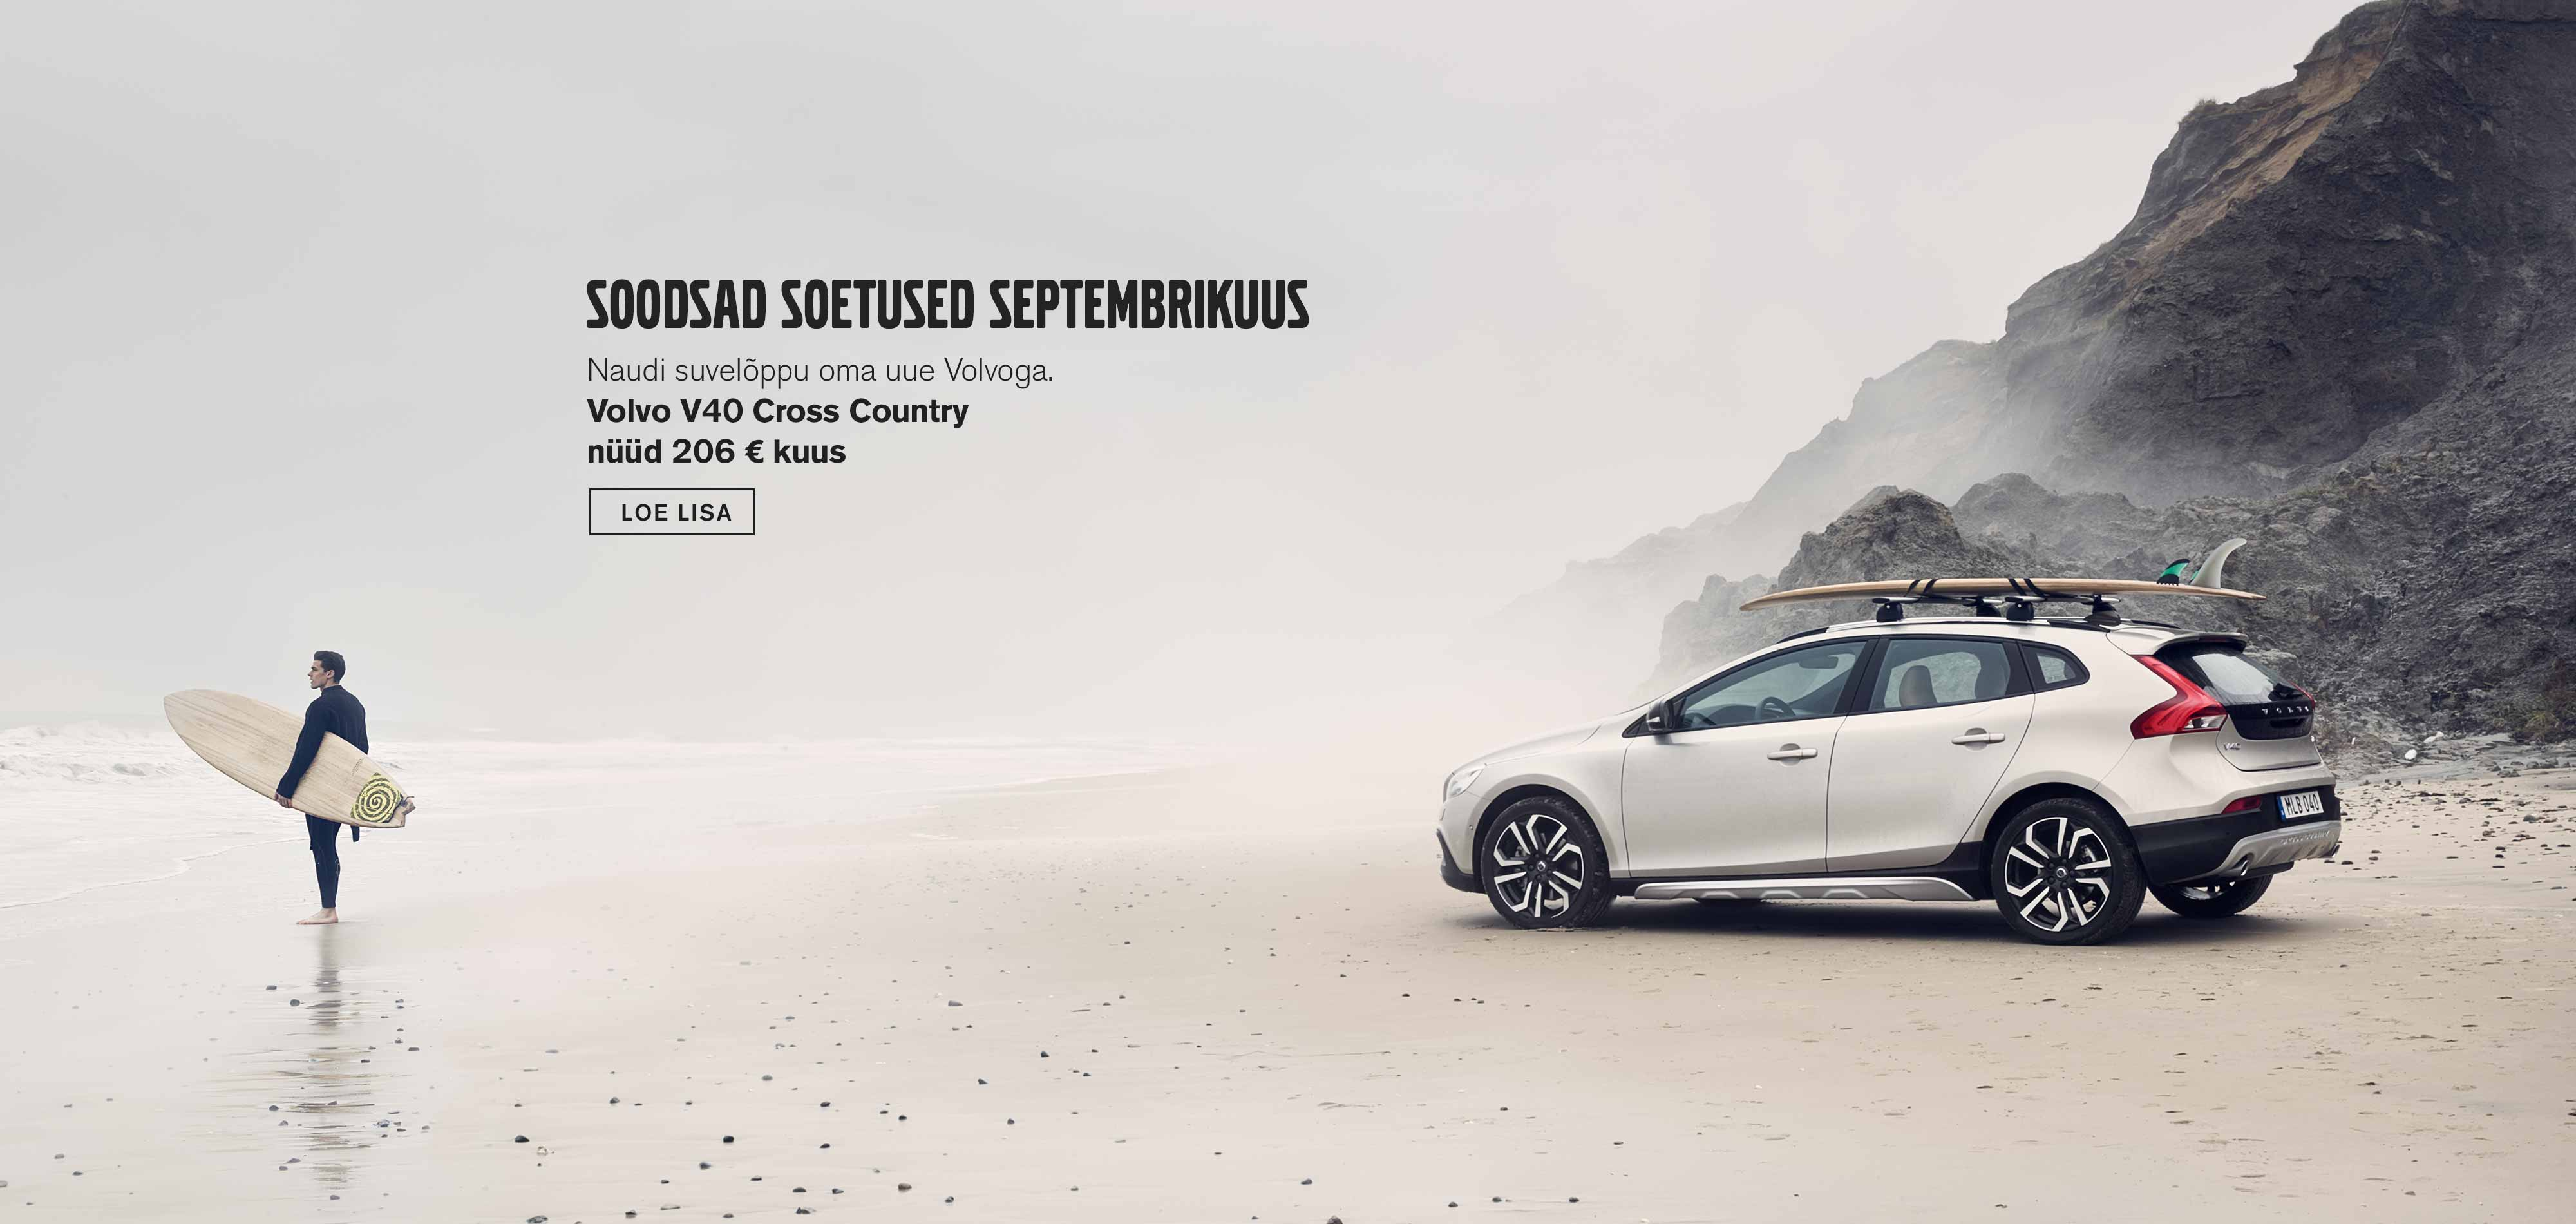 Volvo V40 Cross Country septembrikuu sooduspakkumised